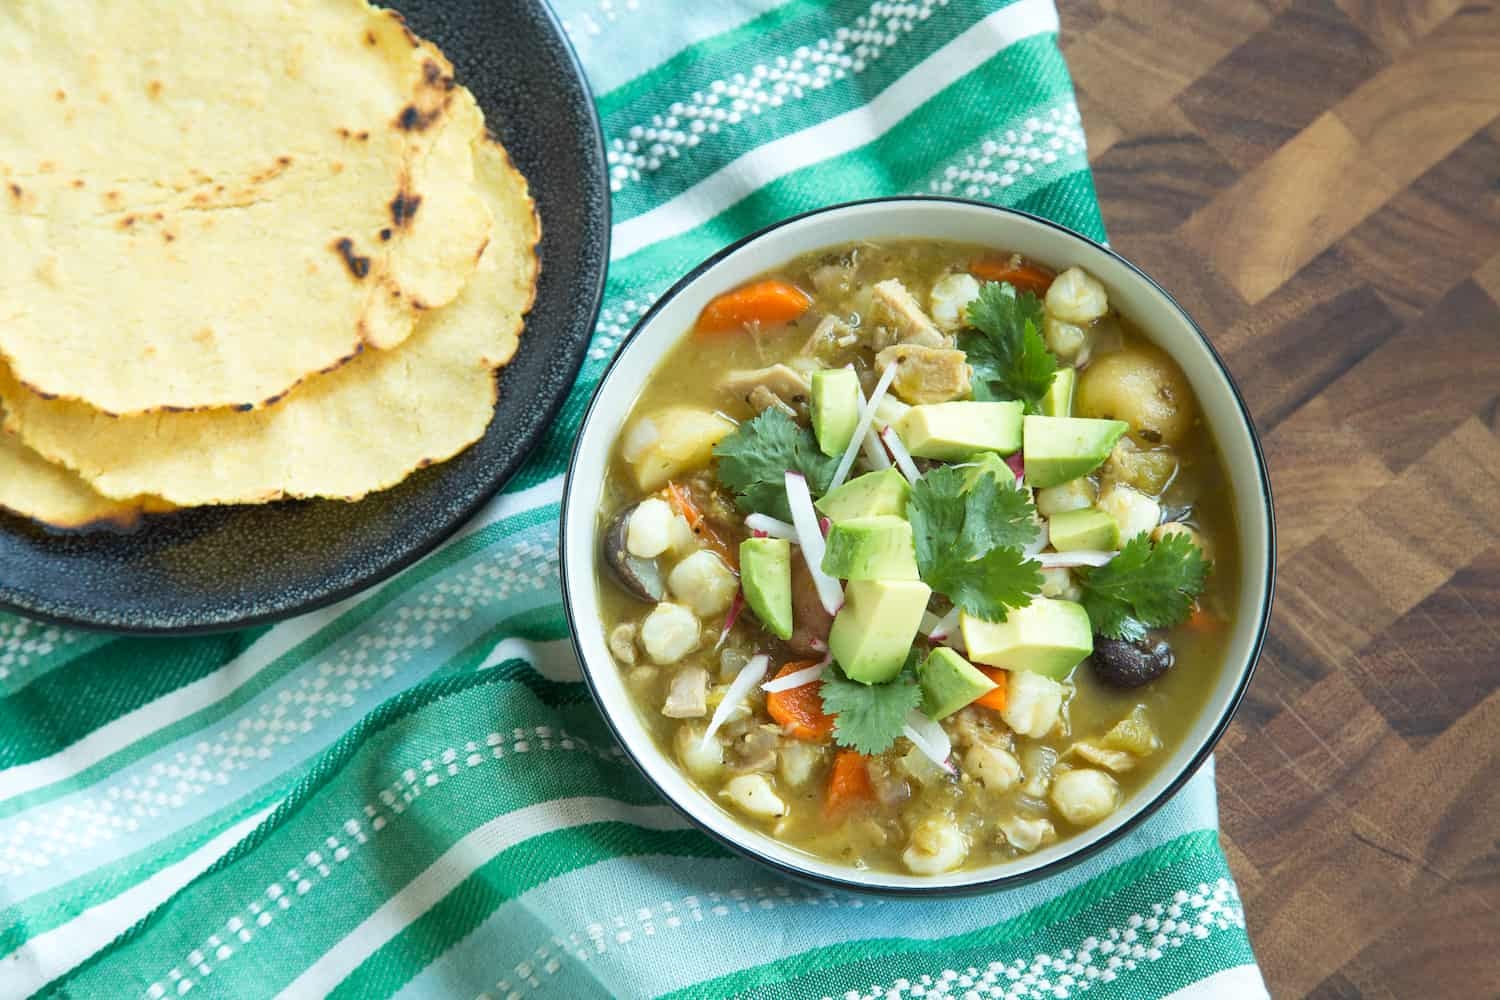 pork and hominy stew with tortillas